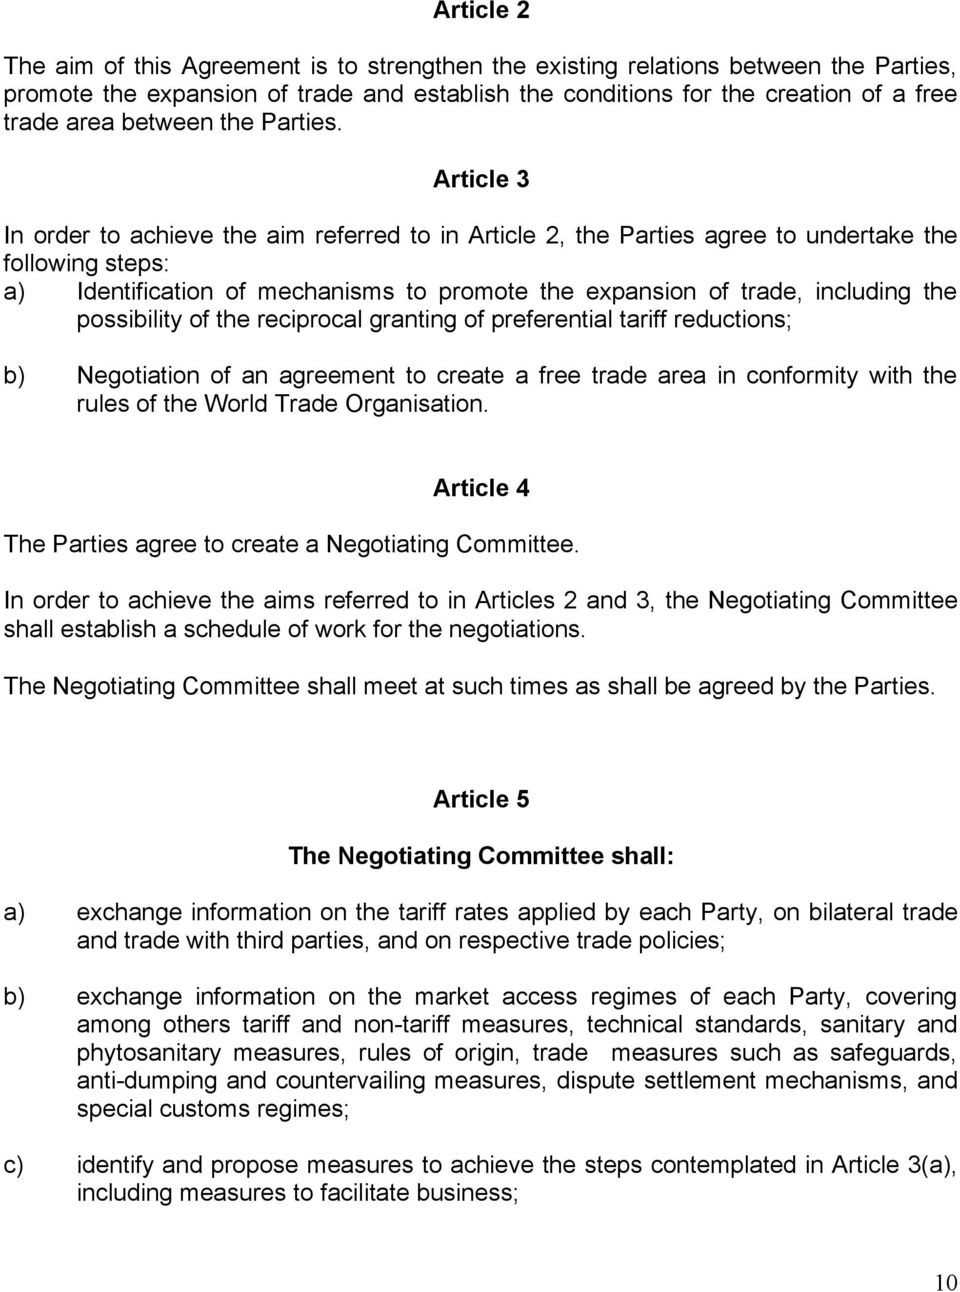 Article 3 In order to achieve the aim referred to in Article 2, the Parties agree to undertake the following steps: a) Identification of mechanisms to promote the expansion of trade, including the